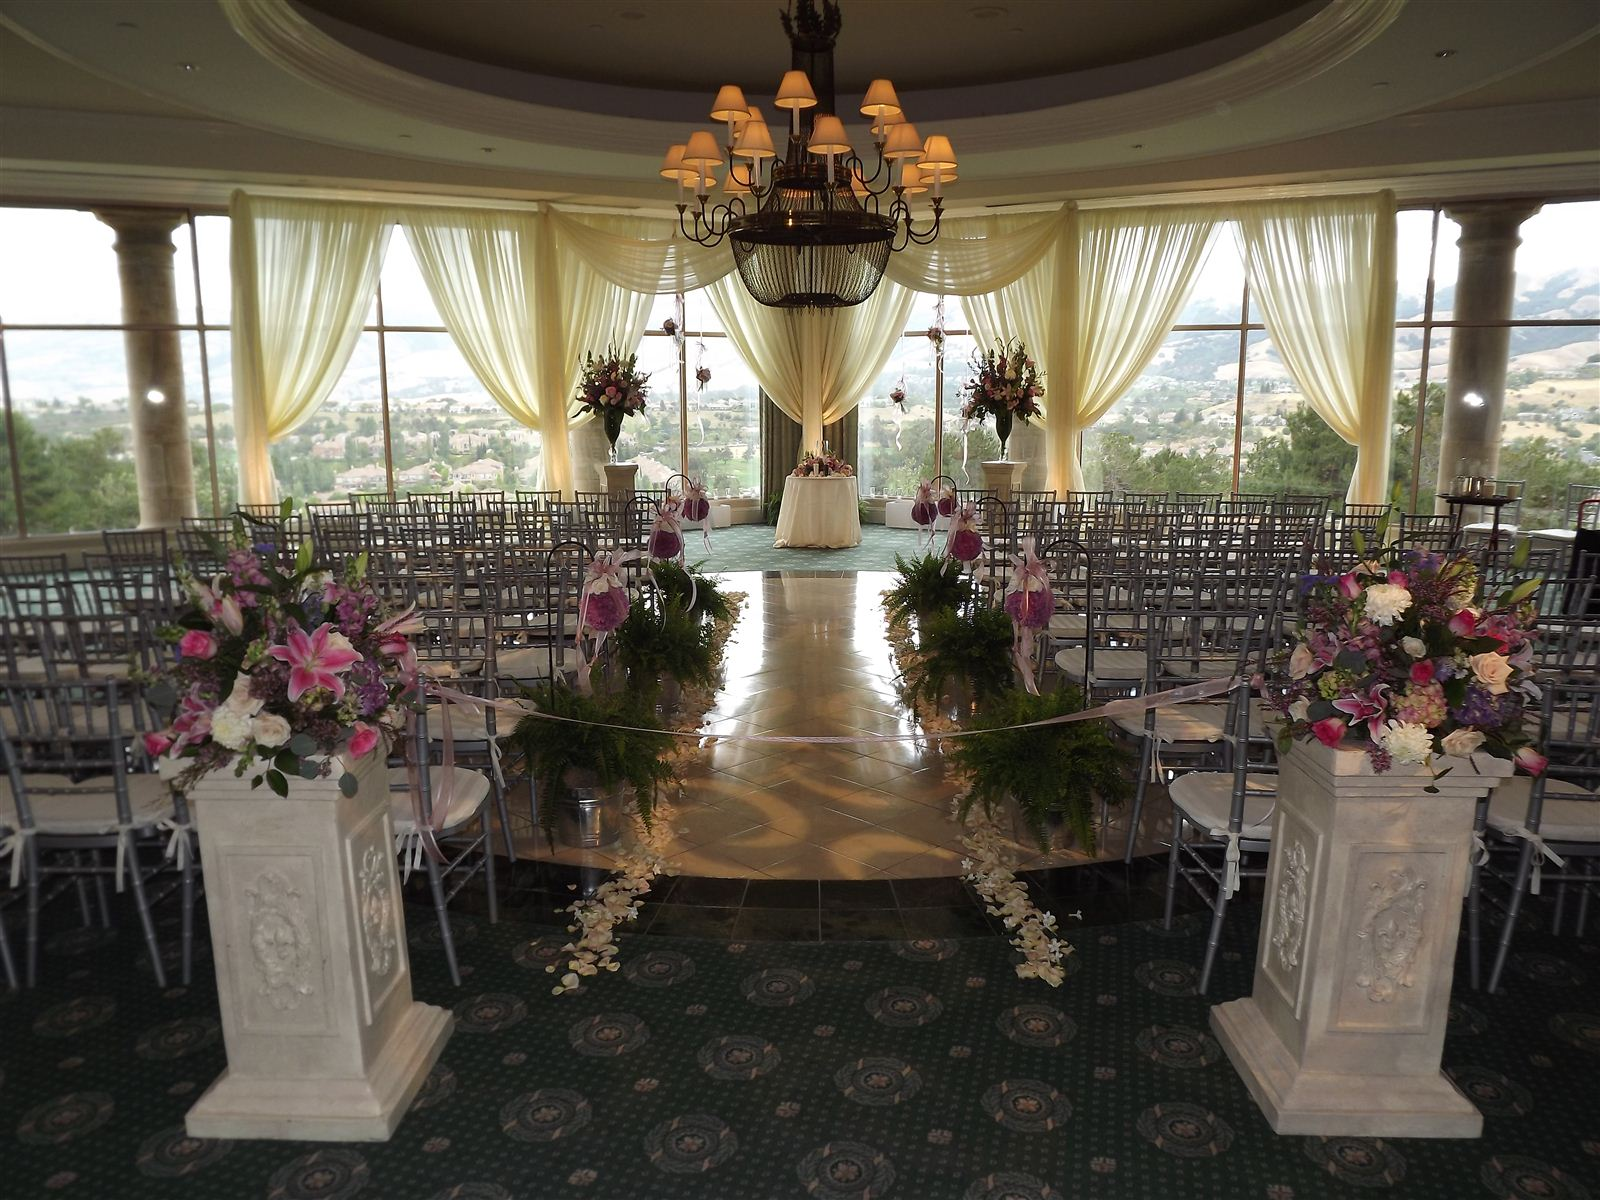 Silver Creek Valley Country Club Main Ballroom Seating For 280